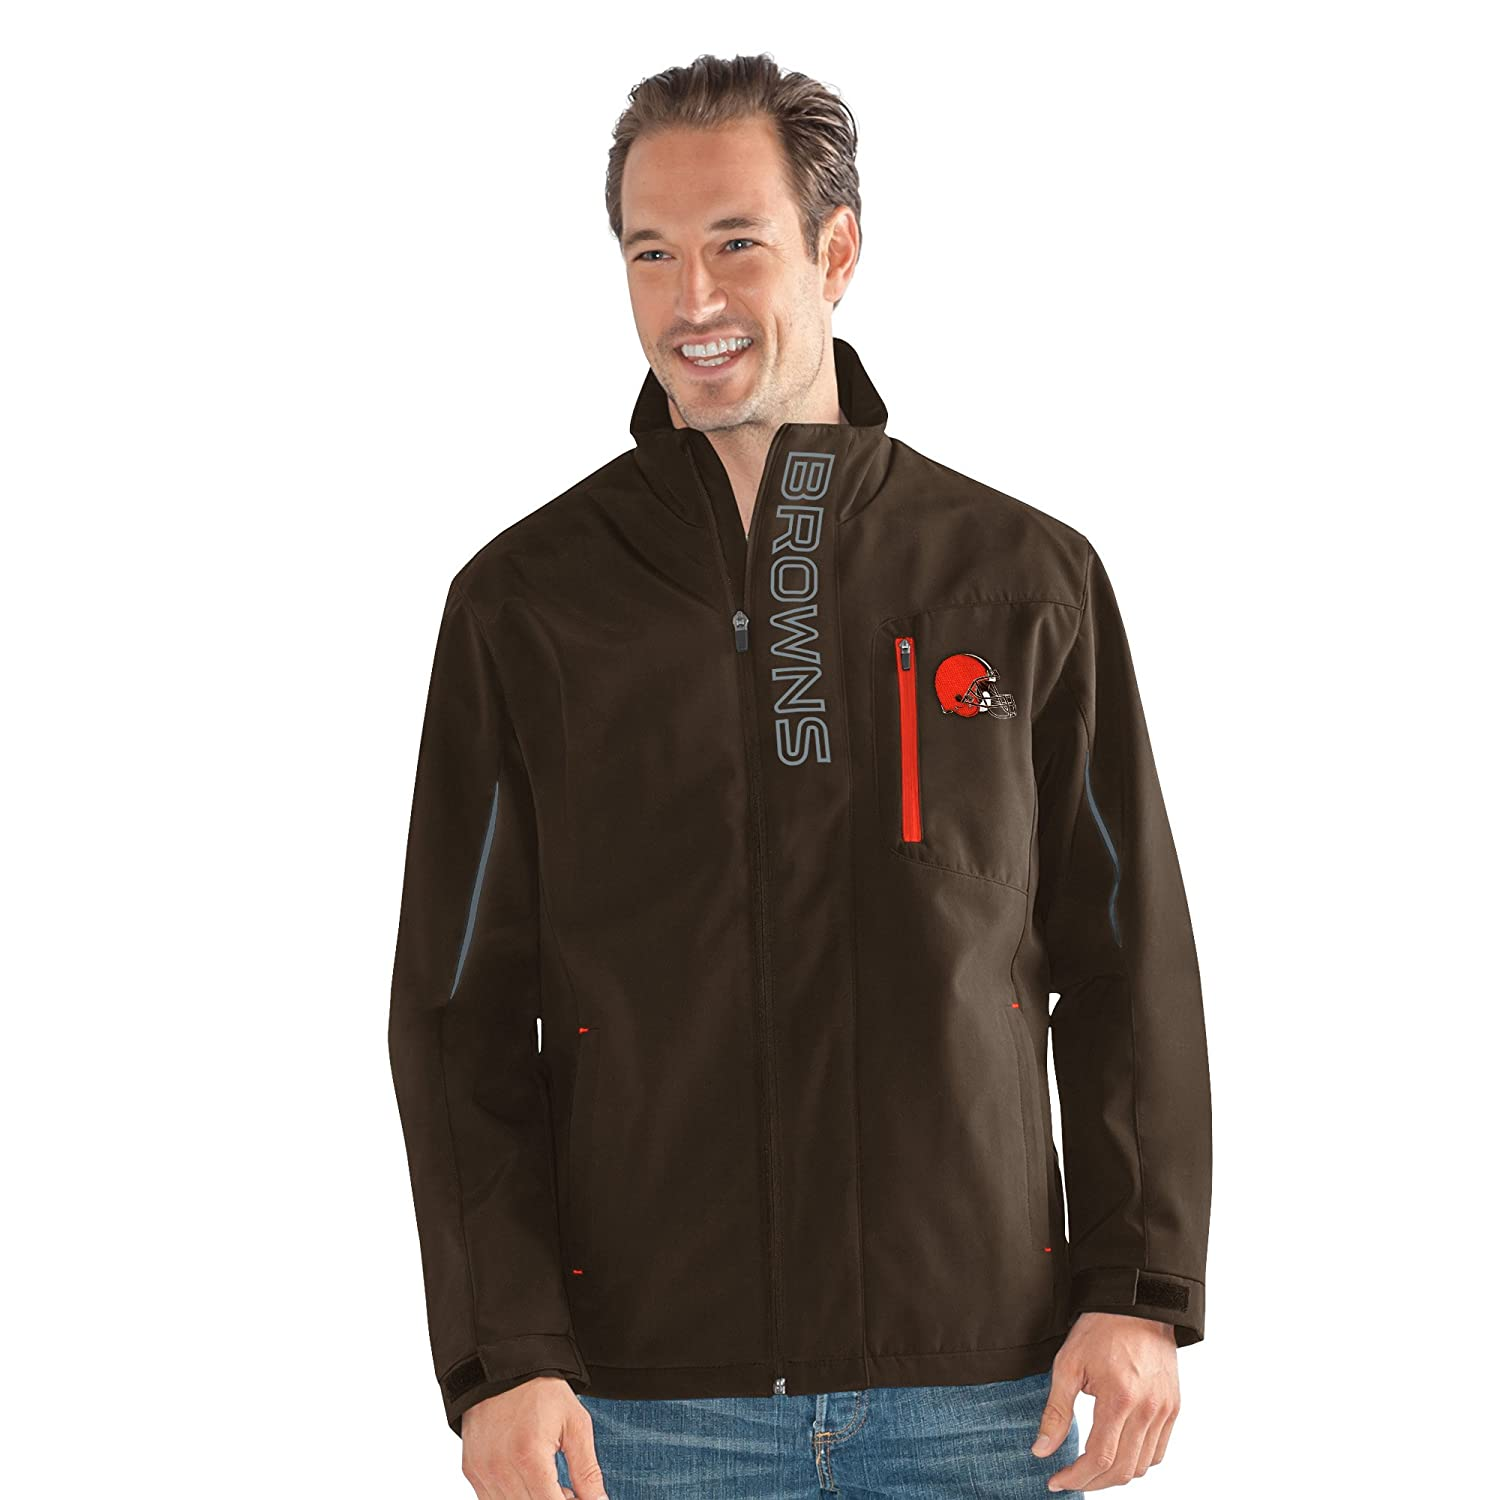 G-III Sports Energie Soft Shell Full Zip Jacket, Herren, Energy Soft Shell Full Zip Jacket, grün, XX-Large